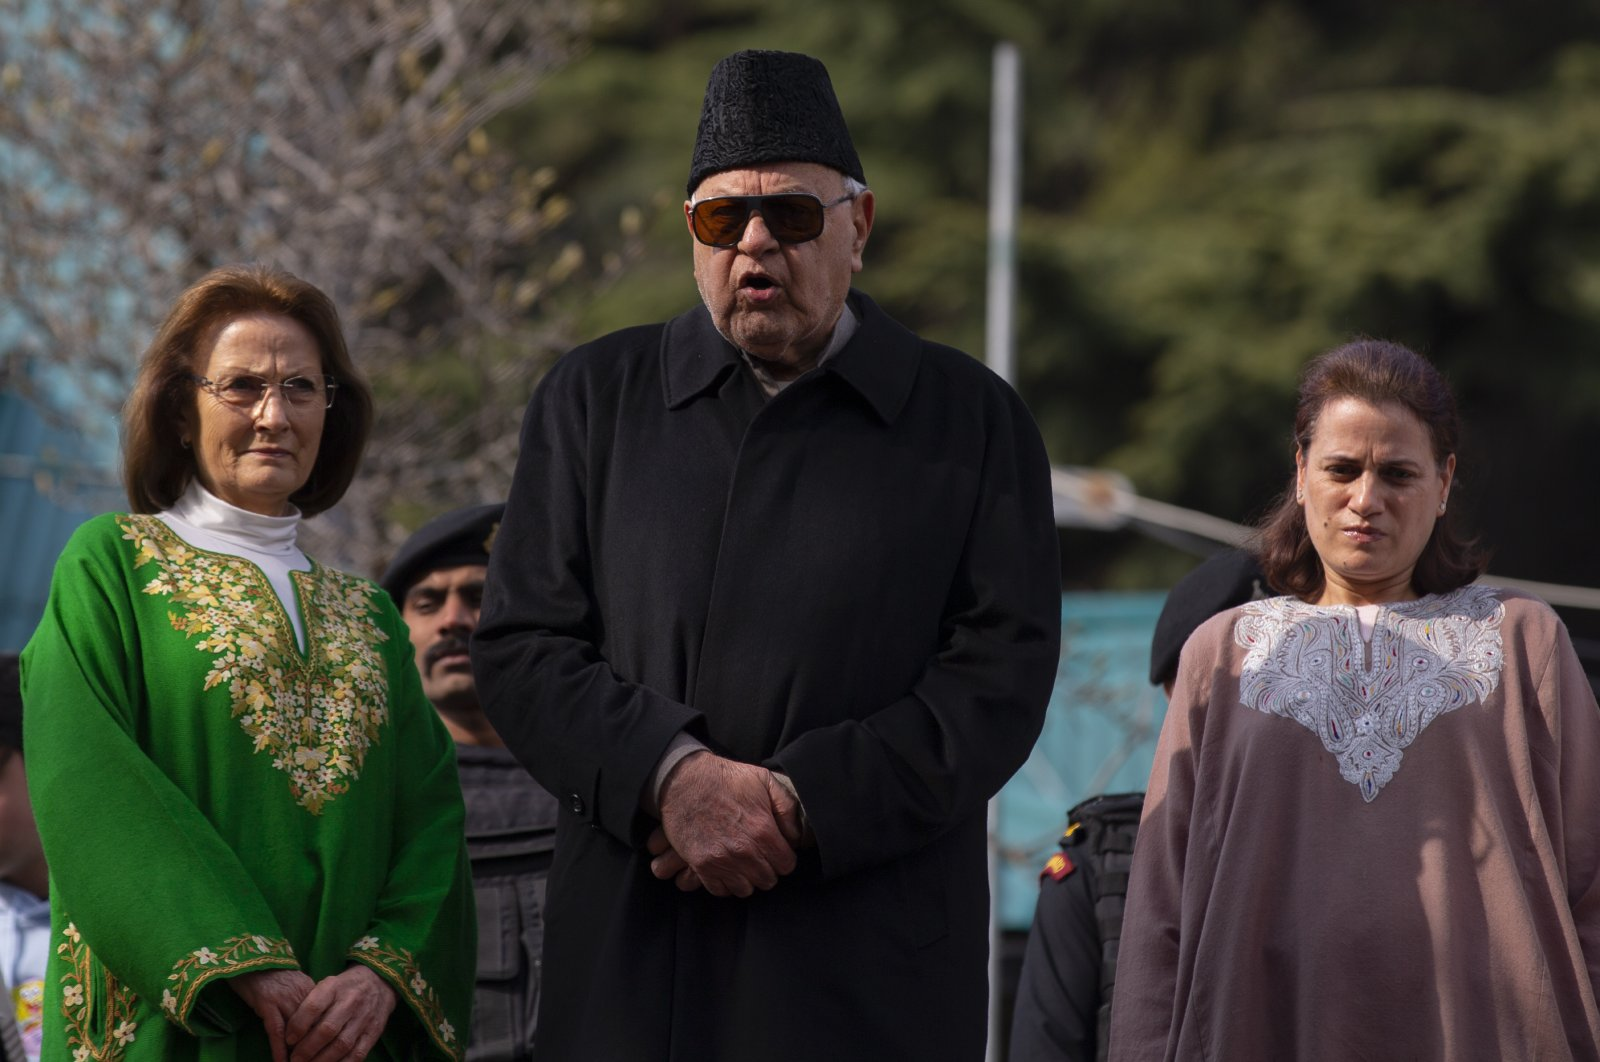 Former Chief Minister of Jammu and Kashmir and National Conference party president Farooq Abdullah,(C) flanked by his wife Molly Abdullah, (L) and daughter Safia Abdullah speaks to media persons at his residence, Srinagar, March 13, 2020. (AP Photo)